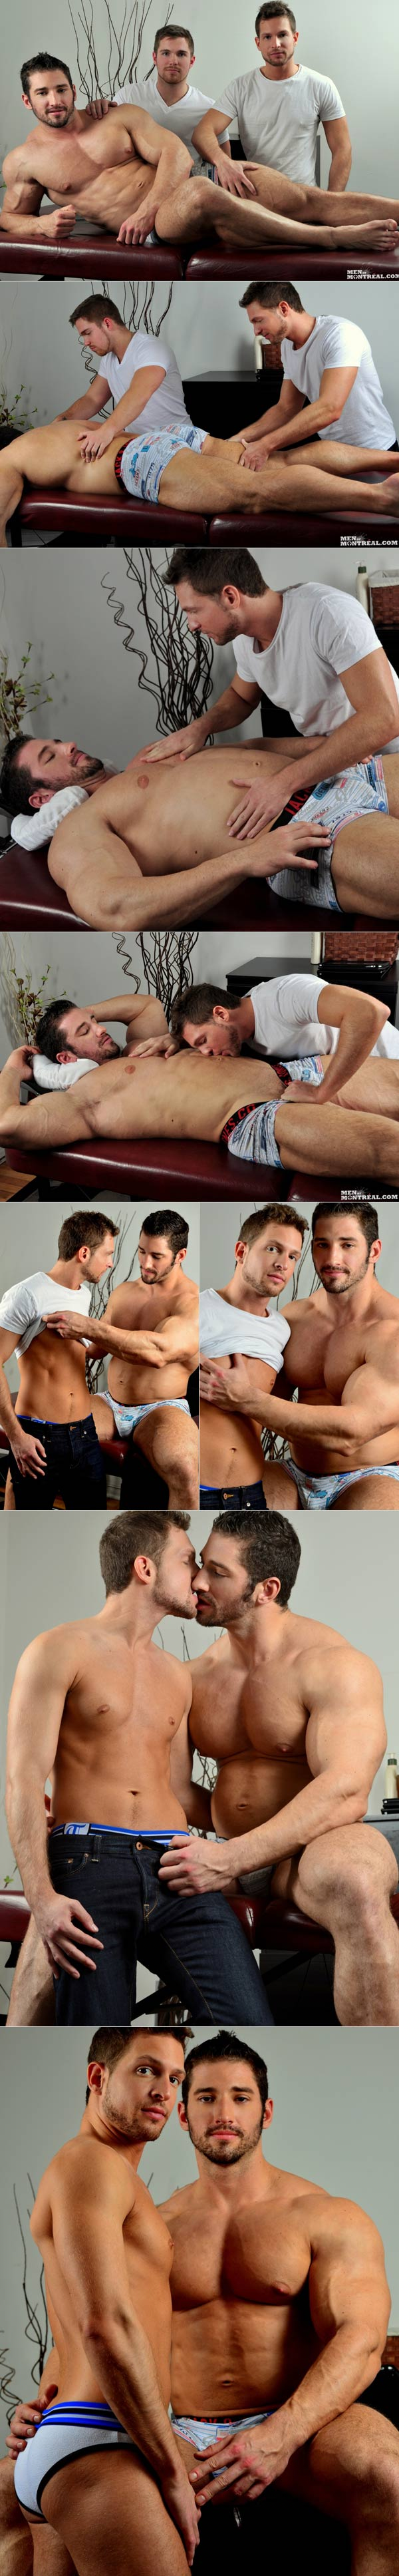 Worshipping Zeus (Christian Power & Hayden Colby) at MenOfMontreal